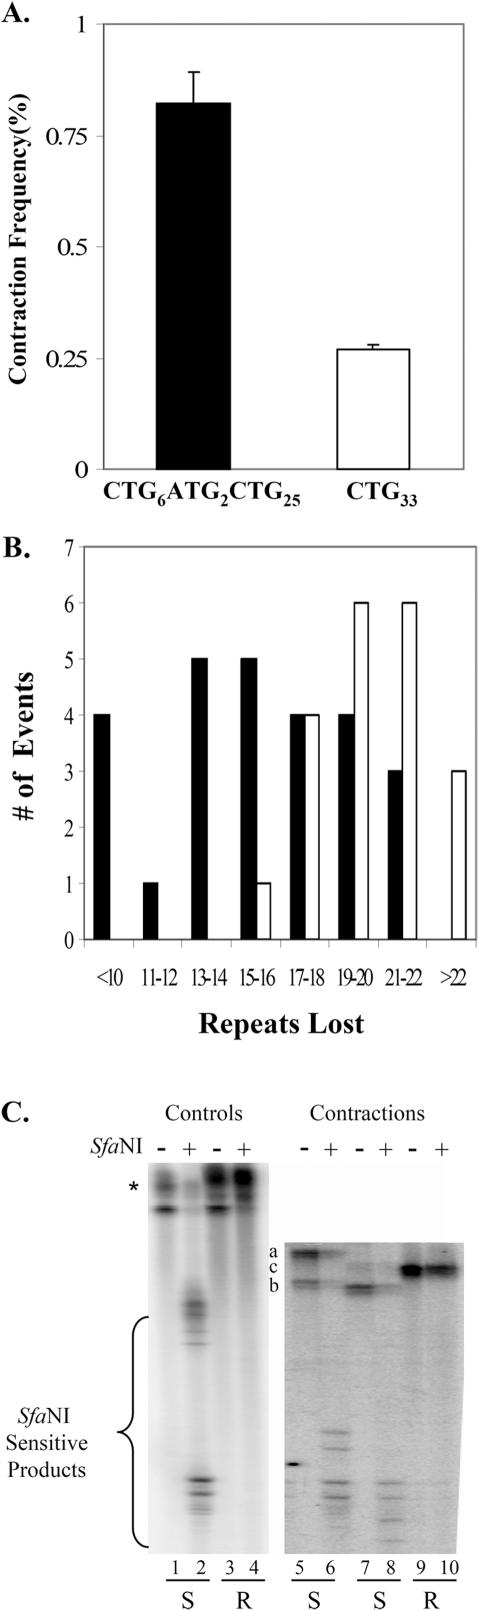 Influence of interruptions on CTG repeat contractions in SVG-A cells. ( A ) Corrected contraction frequencies ( Table 1 , entries 9L and 9M) are plotted for starting tracts of (CTG) 6 (ATG) 2 (CTG) 25 (filled bar) and for (CTG) 33 (unfilled bar). Error bars indicate ±1 SEM. ( B ) Mutation spectra for (CTG) 6 (ATG) 2 (CTG) 25 (filled bars) versus (CTG) 33 (unfilled bars). The number of observed events is plotted on the ordinate versus the size of the contraction (as determined by PCR) on the abscissa. ( C ) Representative gel showing results of the SfaNI-resistance assay. PCR products were analyzed on 6% denaturing polyacrylamide gels prior to (odd number lanes) or following (even number lanes) treatment with SfaNI, as described in Materials and Methods. Lanes 1–4 show results with PCR products from control 33-repeat plasmids that are interrupted (lanes 1 and 2) or perfect (lanes 3 and 4). The asterisk indicates the starting position of the 33-repeat uncut and SfaNI-resistant perfect repeat tracts. Lanes 5–10 show results with PCR products from contractions of the (CTG) 6 (ATG) 2 (CTG) 25 allele in SVG-A cells. The letters a–c indicate the position of the uncut samples in lanes 5, 7 and 9, respectively. The letters below the gel image indicate the assignment of SfaNI sensitivity (S) or resistance (R). To become resistant, both ATG interruptions must be lost.